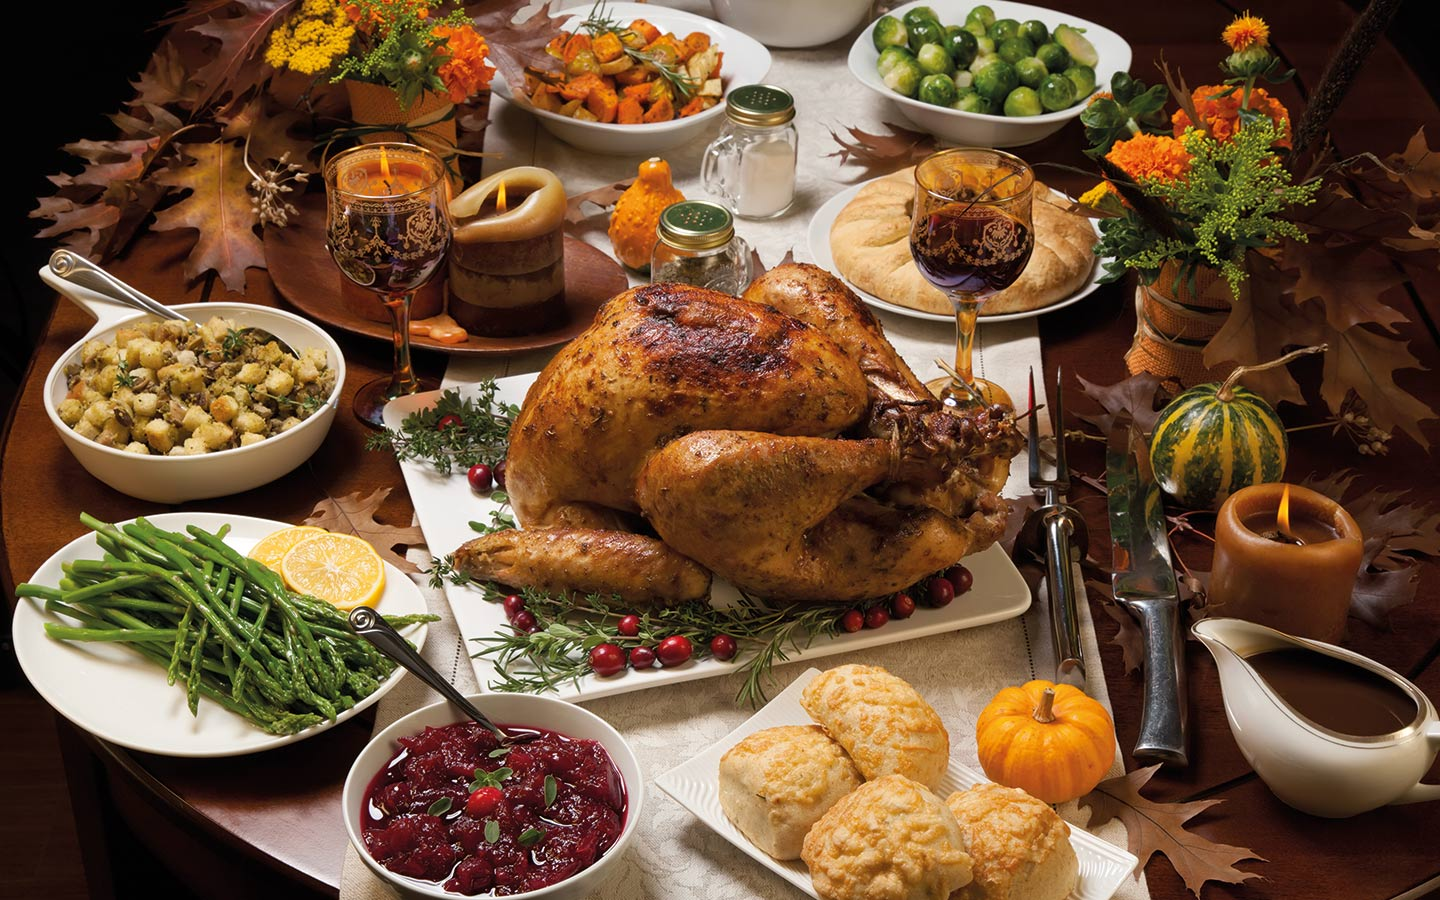 Traditional Thanksgiving meal with turkey